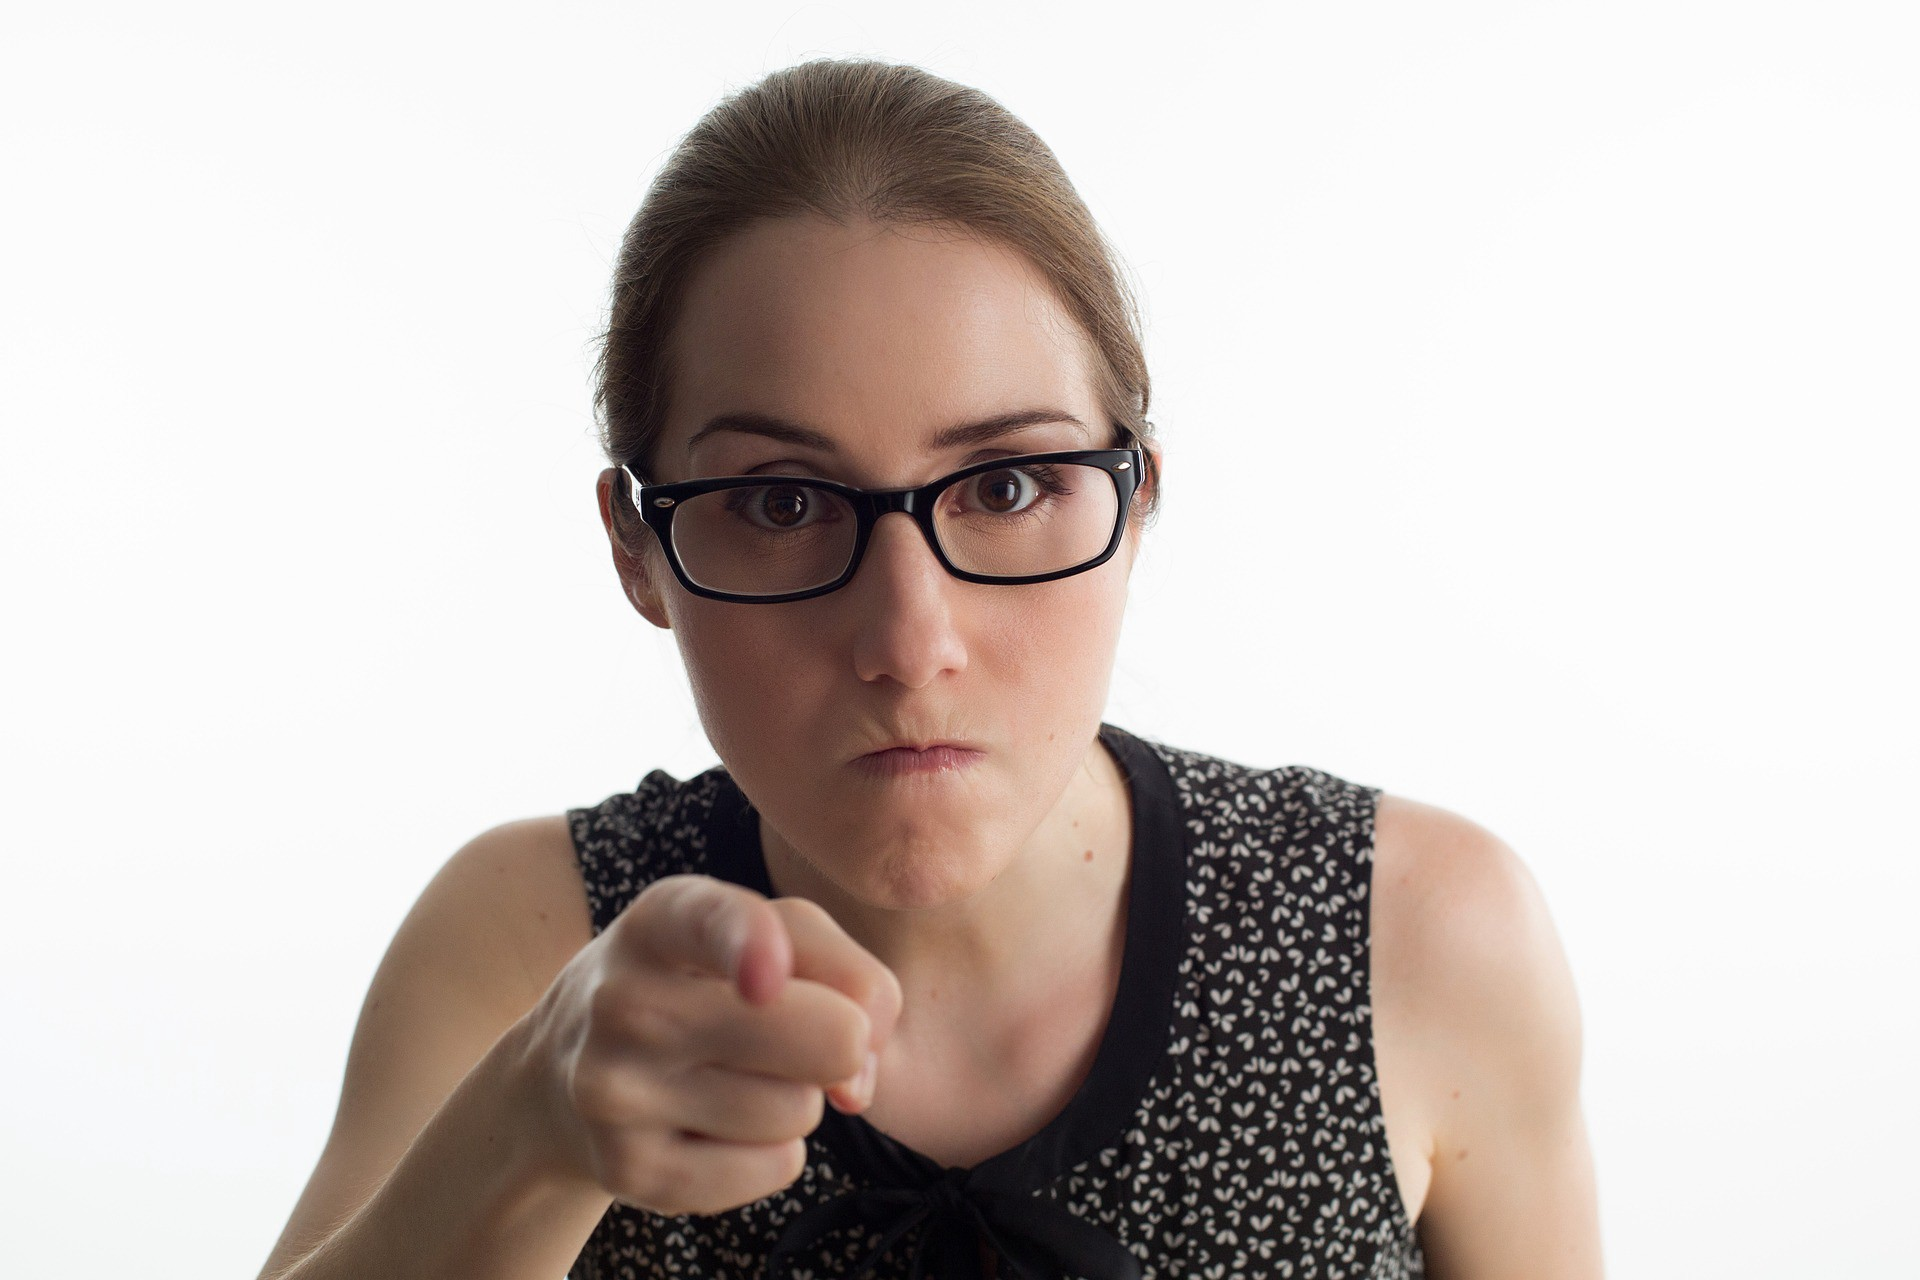 Angry young woman with her hair pulled back pointing her finger at the camera